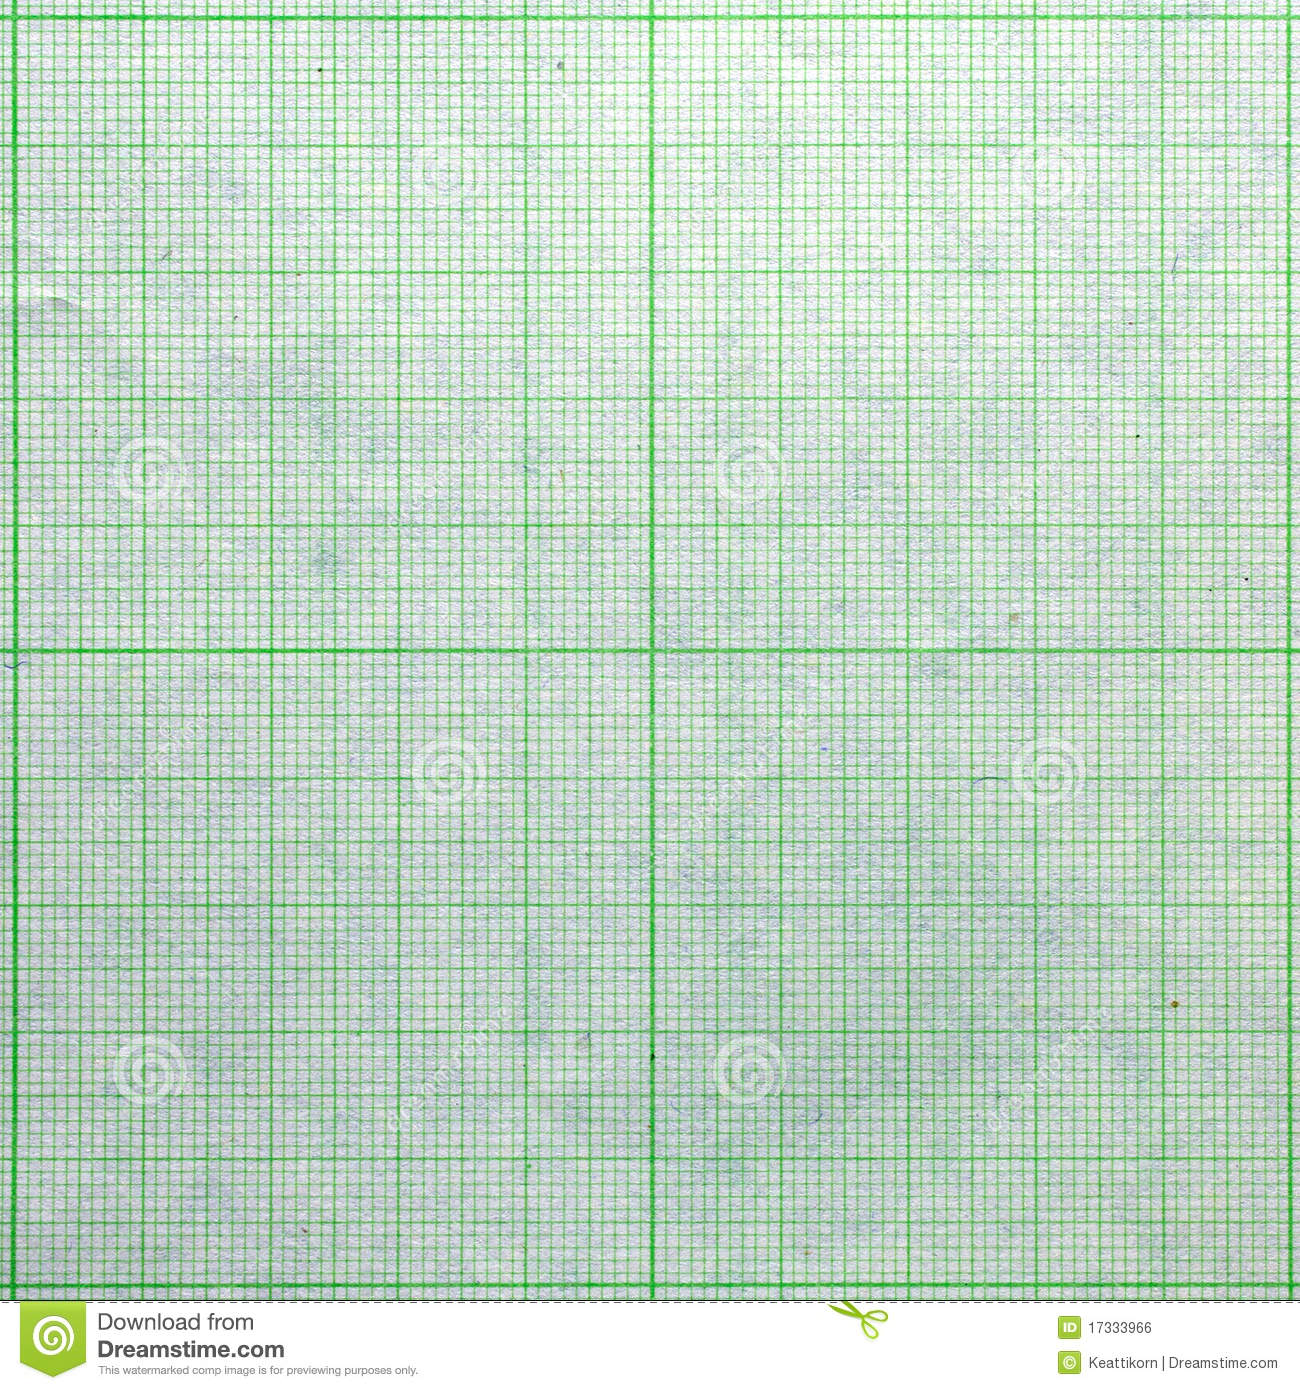 Graph Paper Royalty Free Stock Image